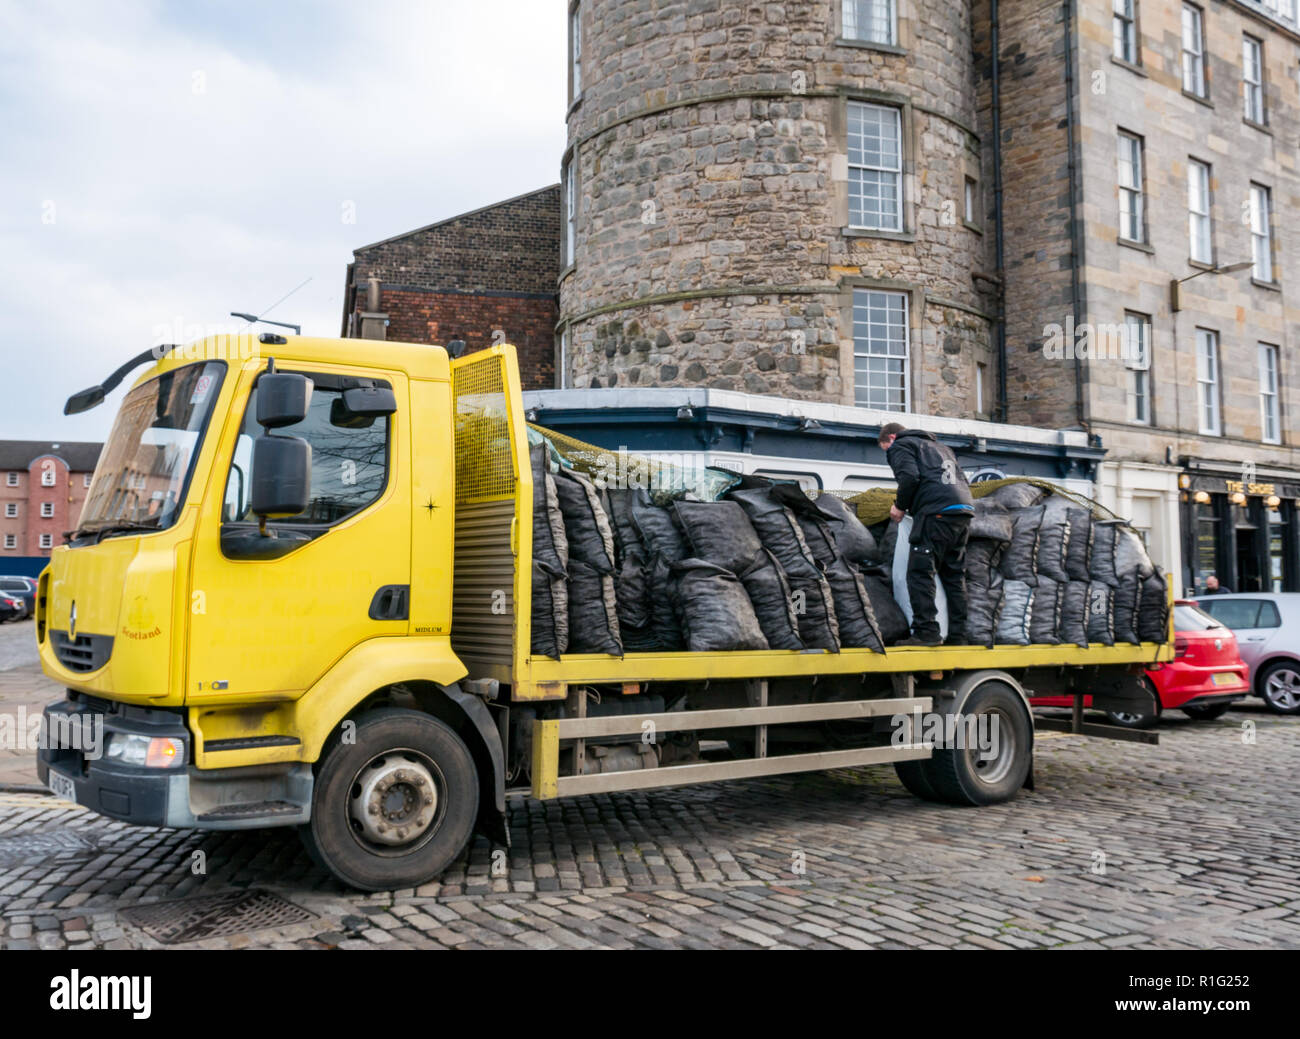 Flatbed lorry with man delivering coal sacks, Tower Place, Leith, Edinburgh, Scotland, UK - Stock Image